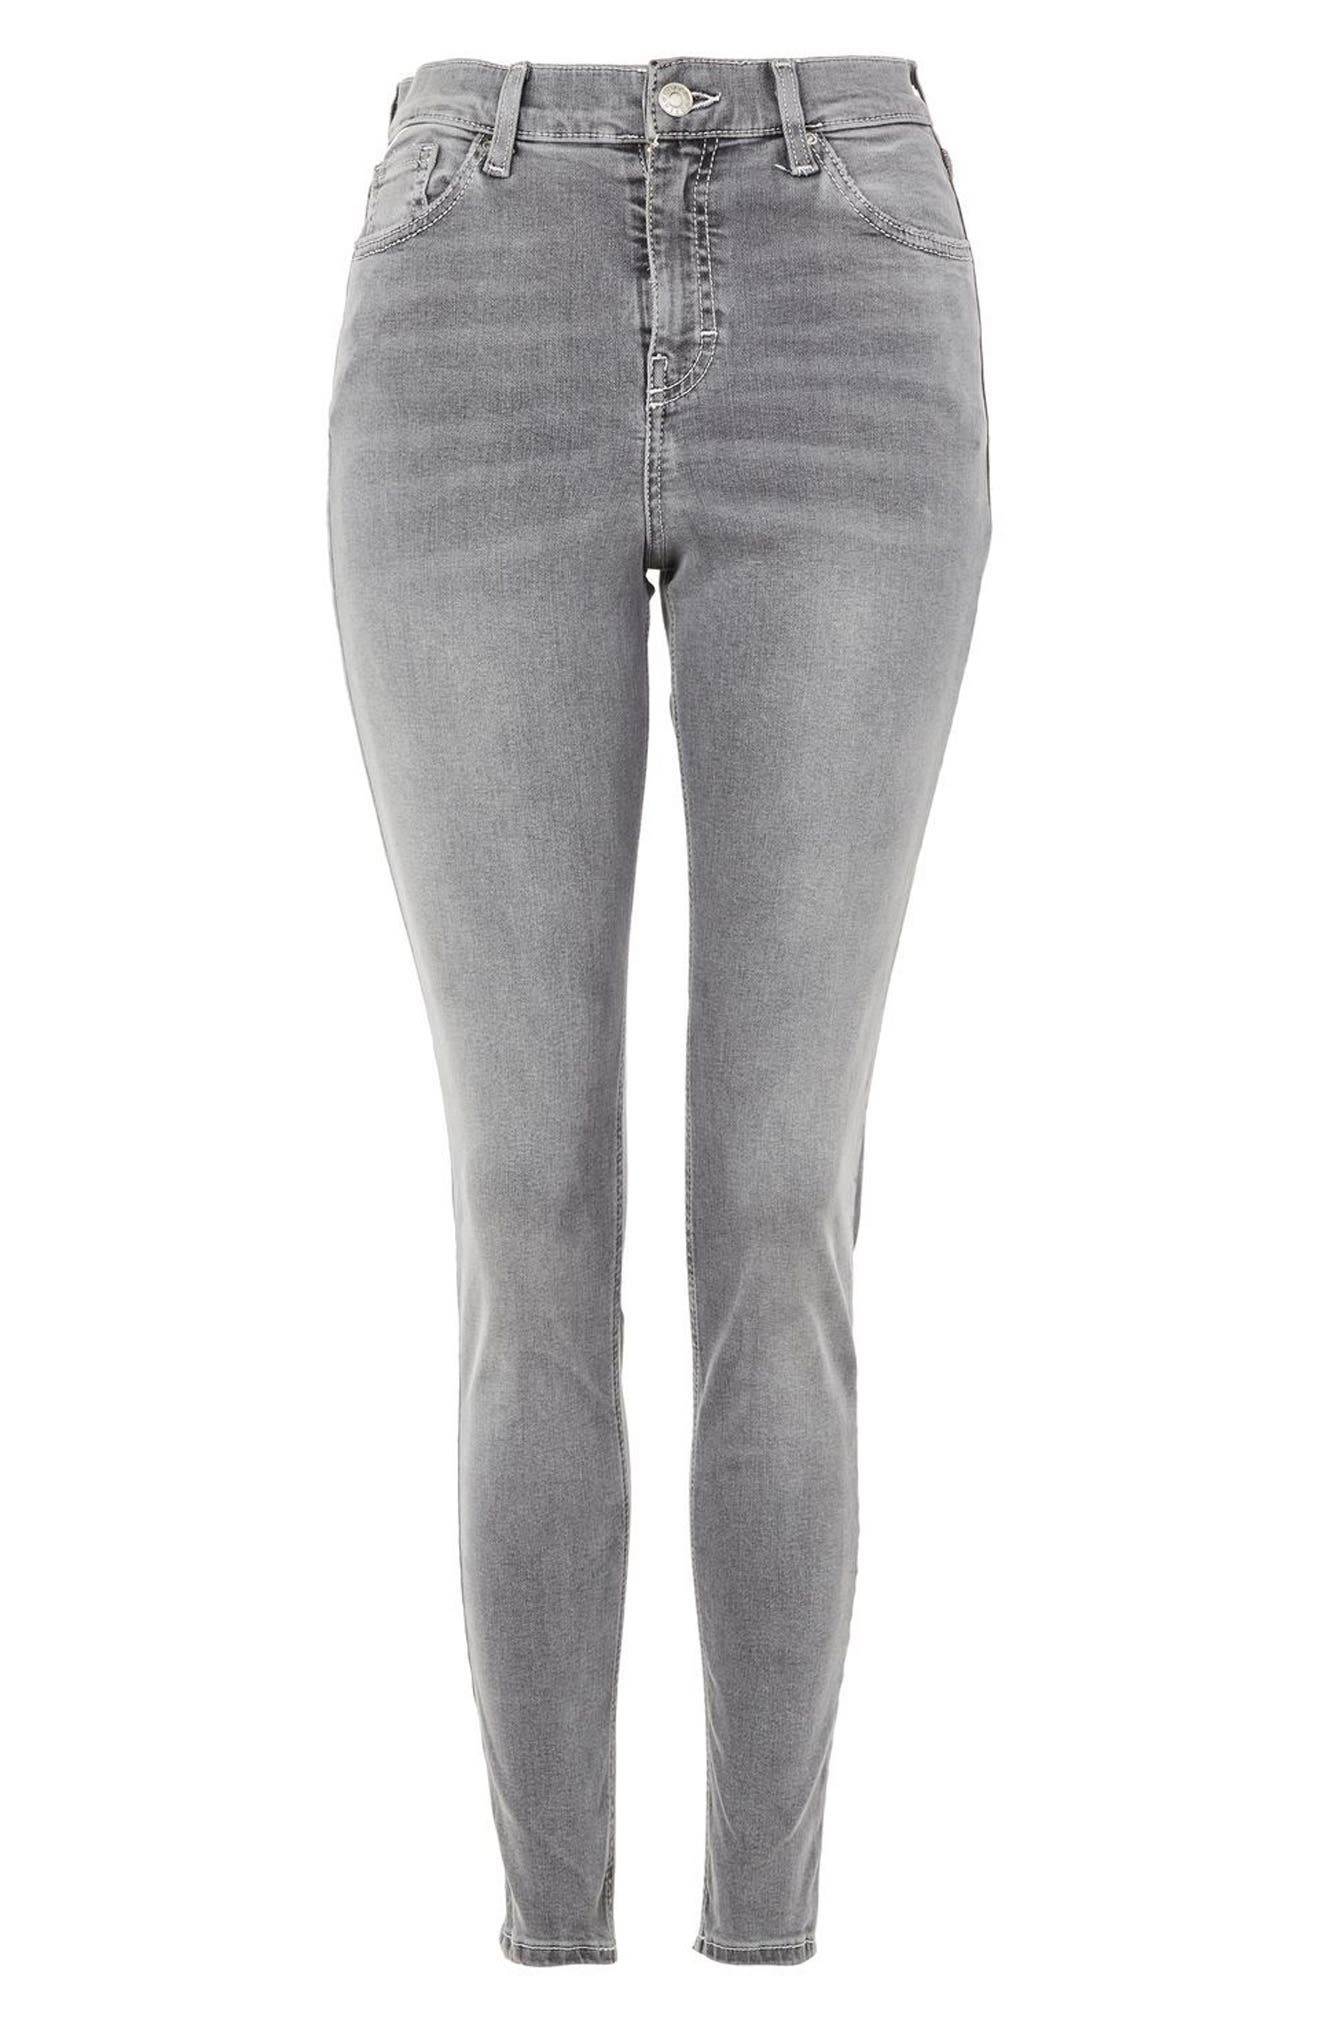 TOPSHOP,                             Jamie High Waist Ankle Skinny Jeans,                             Alternate thumbnail 4, color,                             020